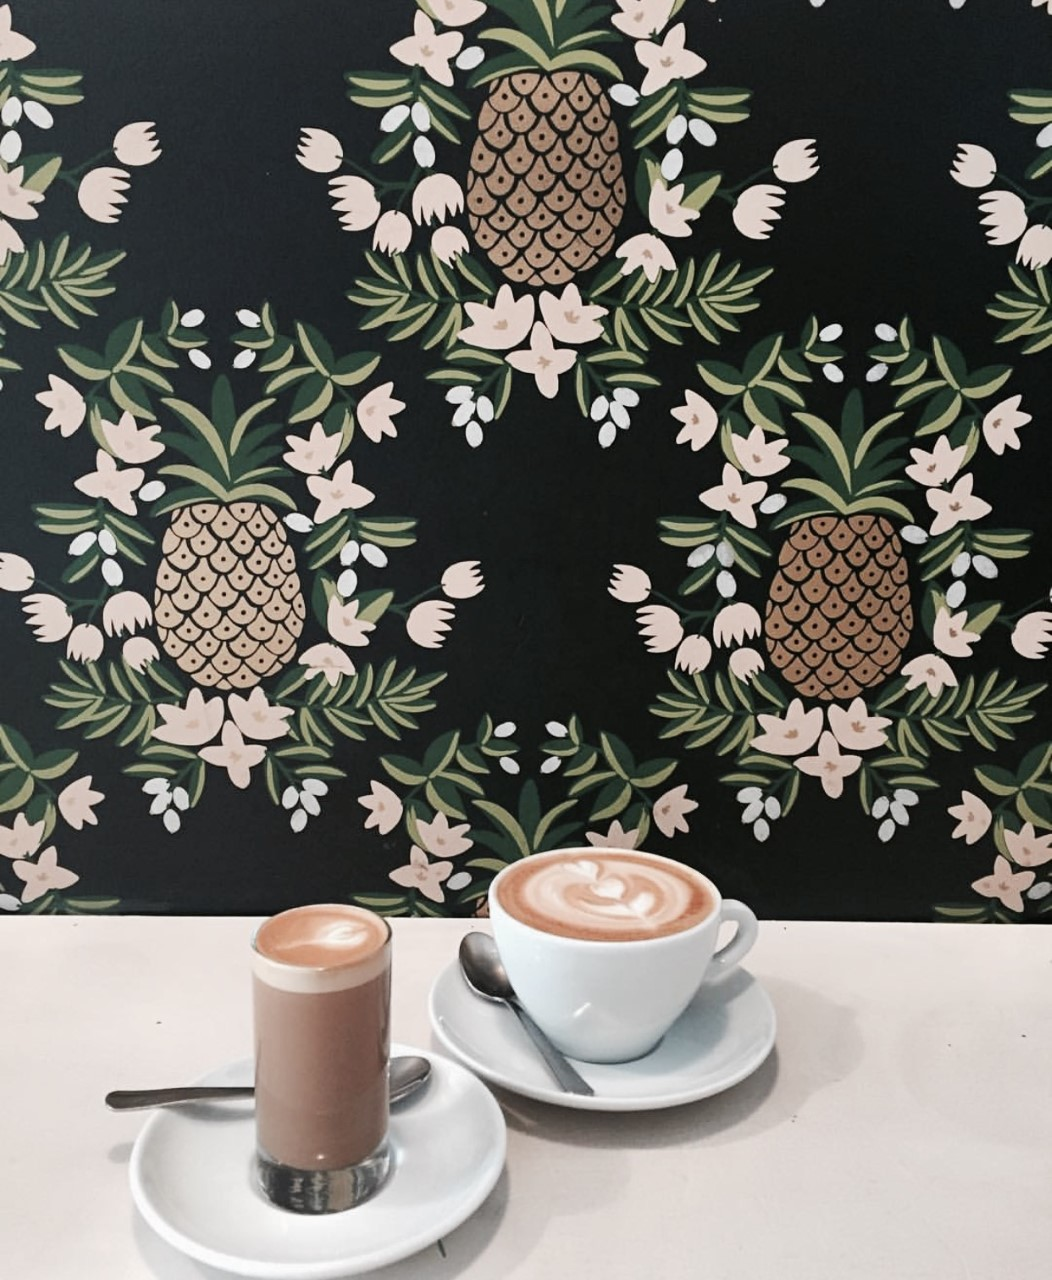 WRECKING BALL  - Ok, so the main thing here is the amazing pineapple wallpaper!I mean, come on that wallpaper and a cup of coffee in front of it has to create a statement Insta photo!I had been dying to go here, since I saw it on Yelp a while back, so when my friend from L.A (also a coffee addict) was visiting, we couldn't wait to catch up & snap away.Even there sugar and milk table had the trendy pineapple background as well as cute sugar cubes on a block of wood (I get really excited about the small details). We also got a photo shoot session outside, as its the perfect place to take a picture of (your outfit, duh) against a white wall & some trendy coffee shop furniture. We managed to get some cool boomerangs there too. Will post on my Instagram soon! Keep a lookout!